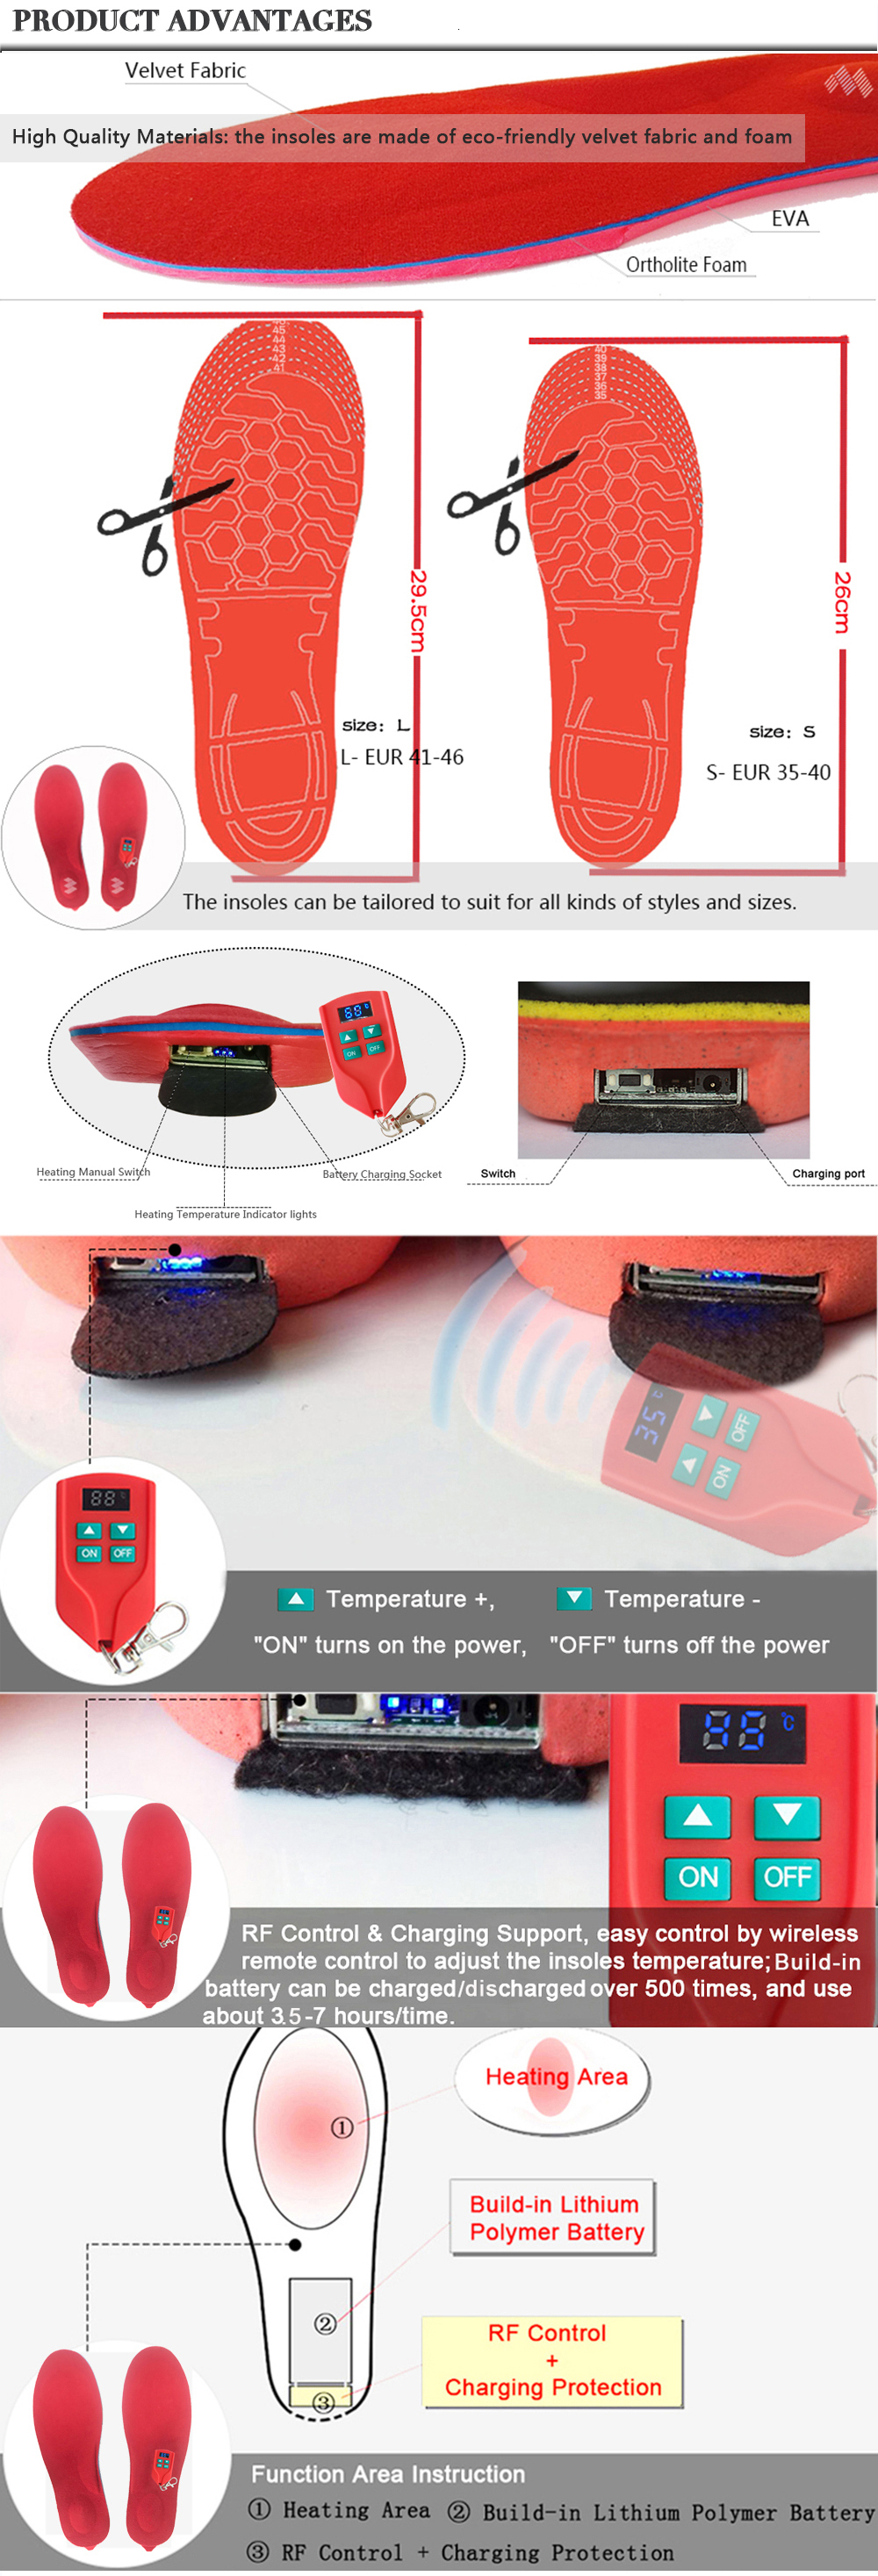 New 2000mAh Heated Insoles Winter Foot Warmer USB Rechargeable Heating Insoles Men Women Shoe Pads for Hunting Skiing Hiking